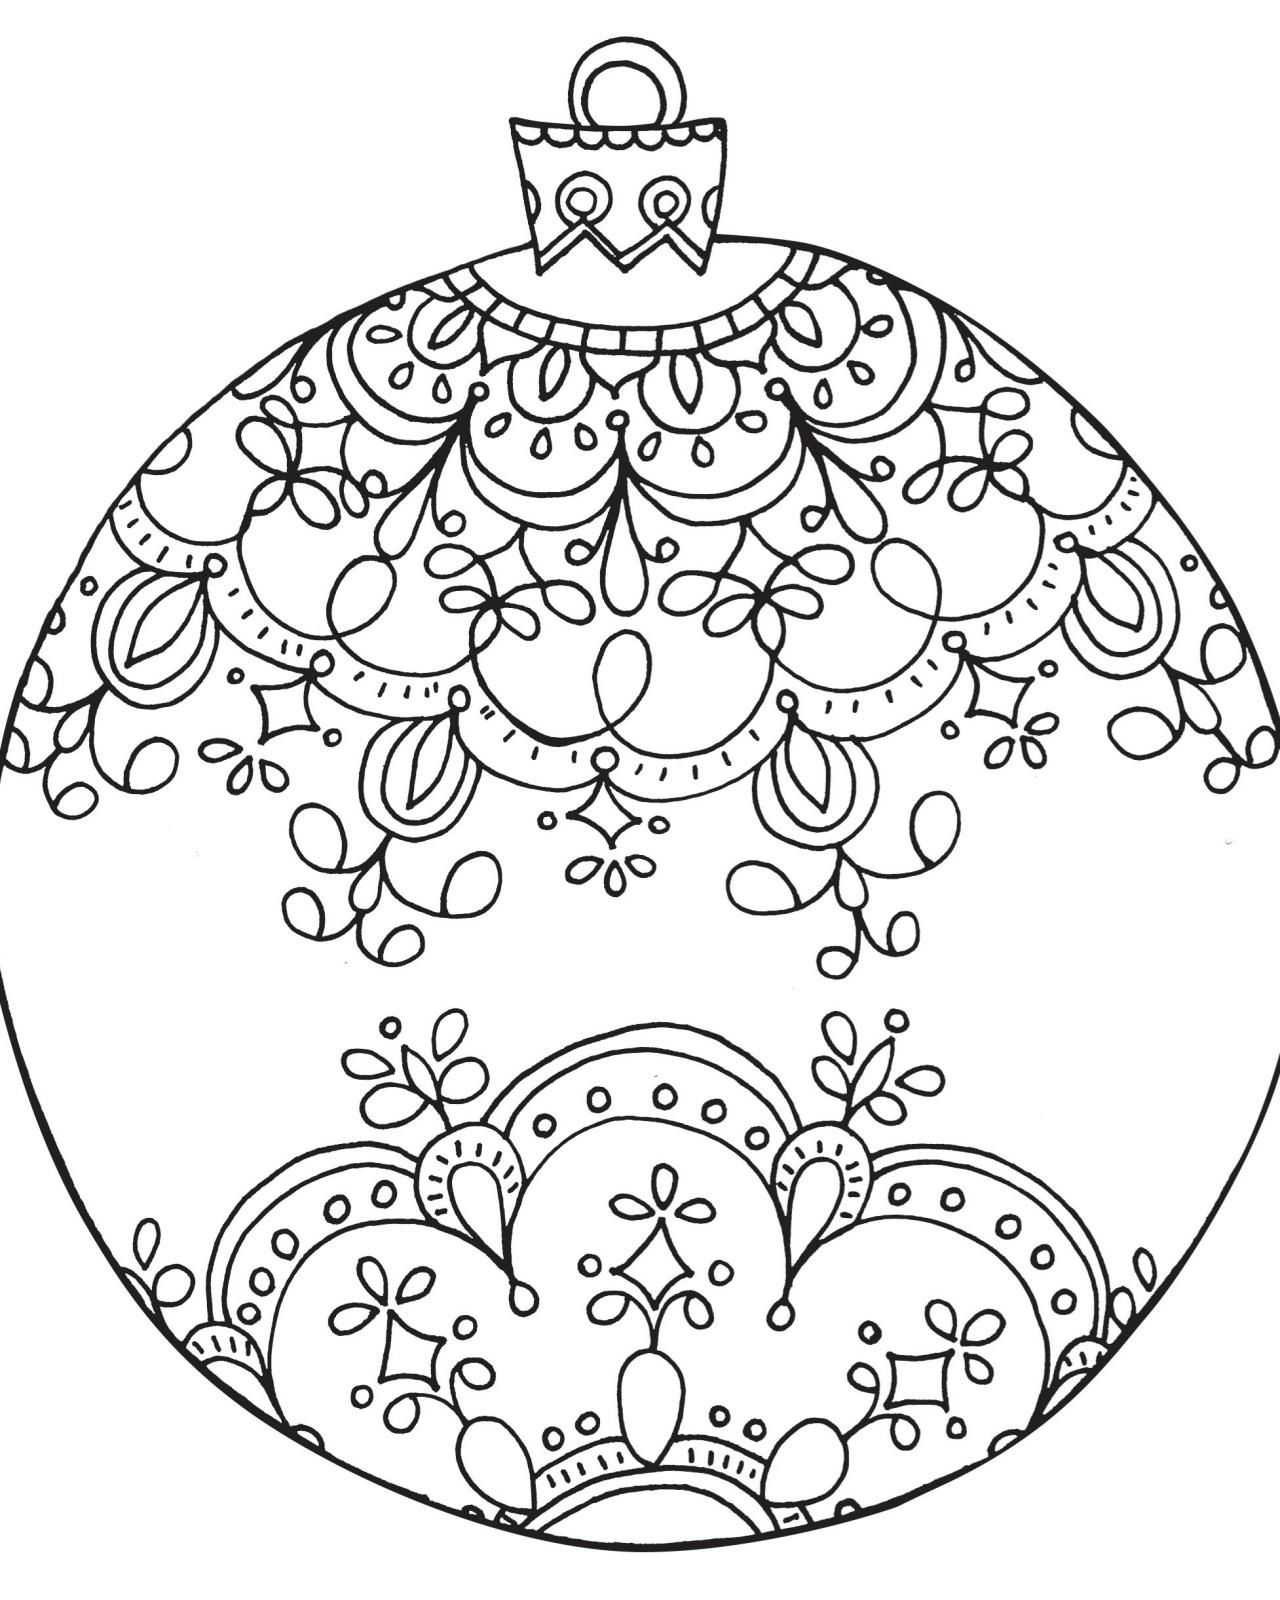 Christmas Coloring Pages Printable For Adults With Free